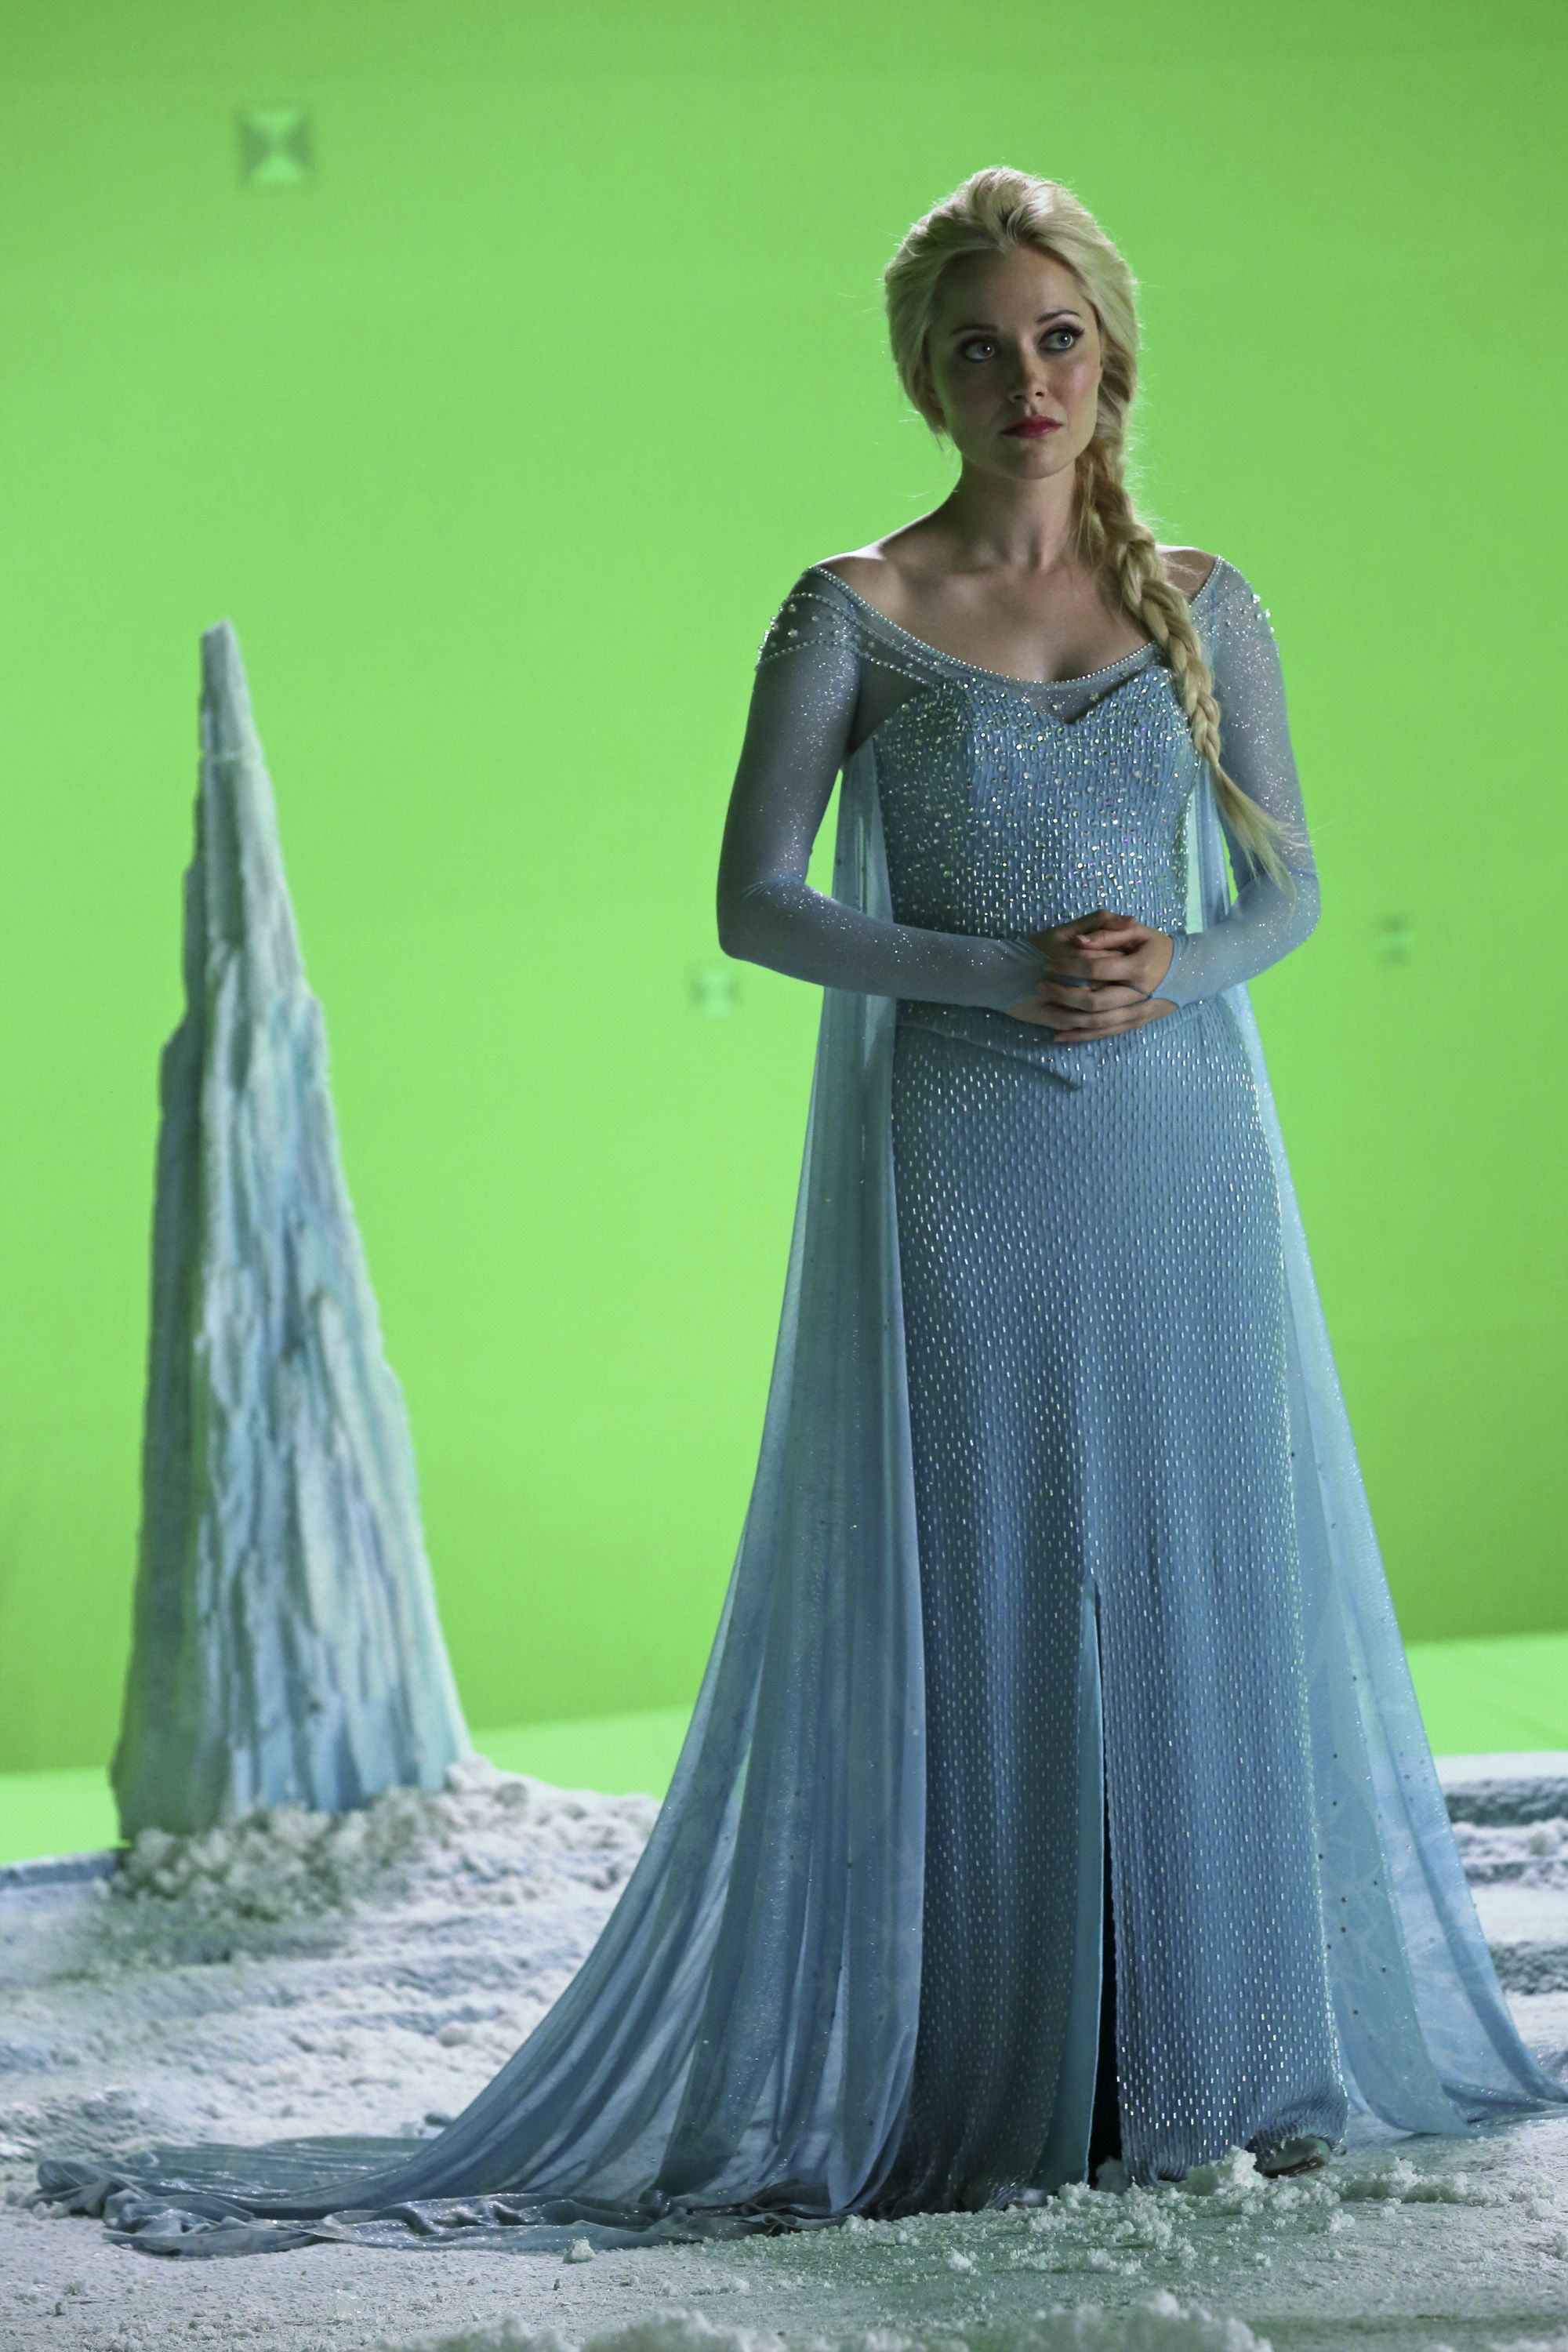 Once Upon A Time Elsa : Photo:, Episode, White, Time,, Disney, Dresses,, Costume, Design